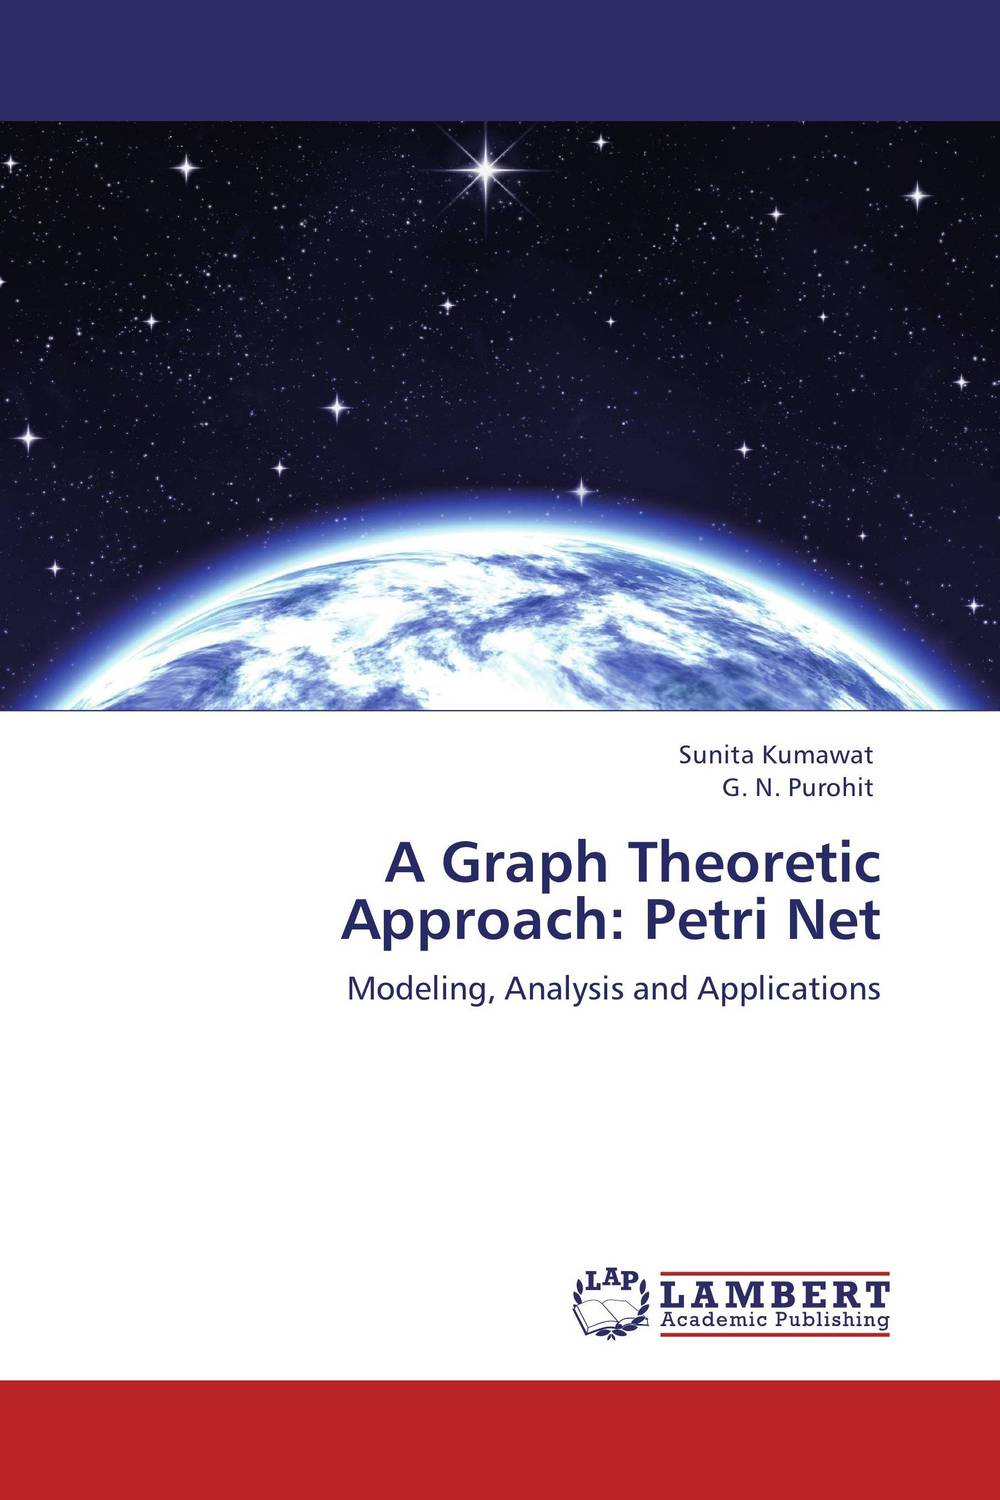 A Graph Theoretic Approach: Petri Net vandana rana and diwakar pandey a fuzzy set theoretic approach to cpu scheduling